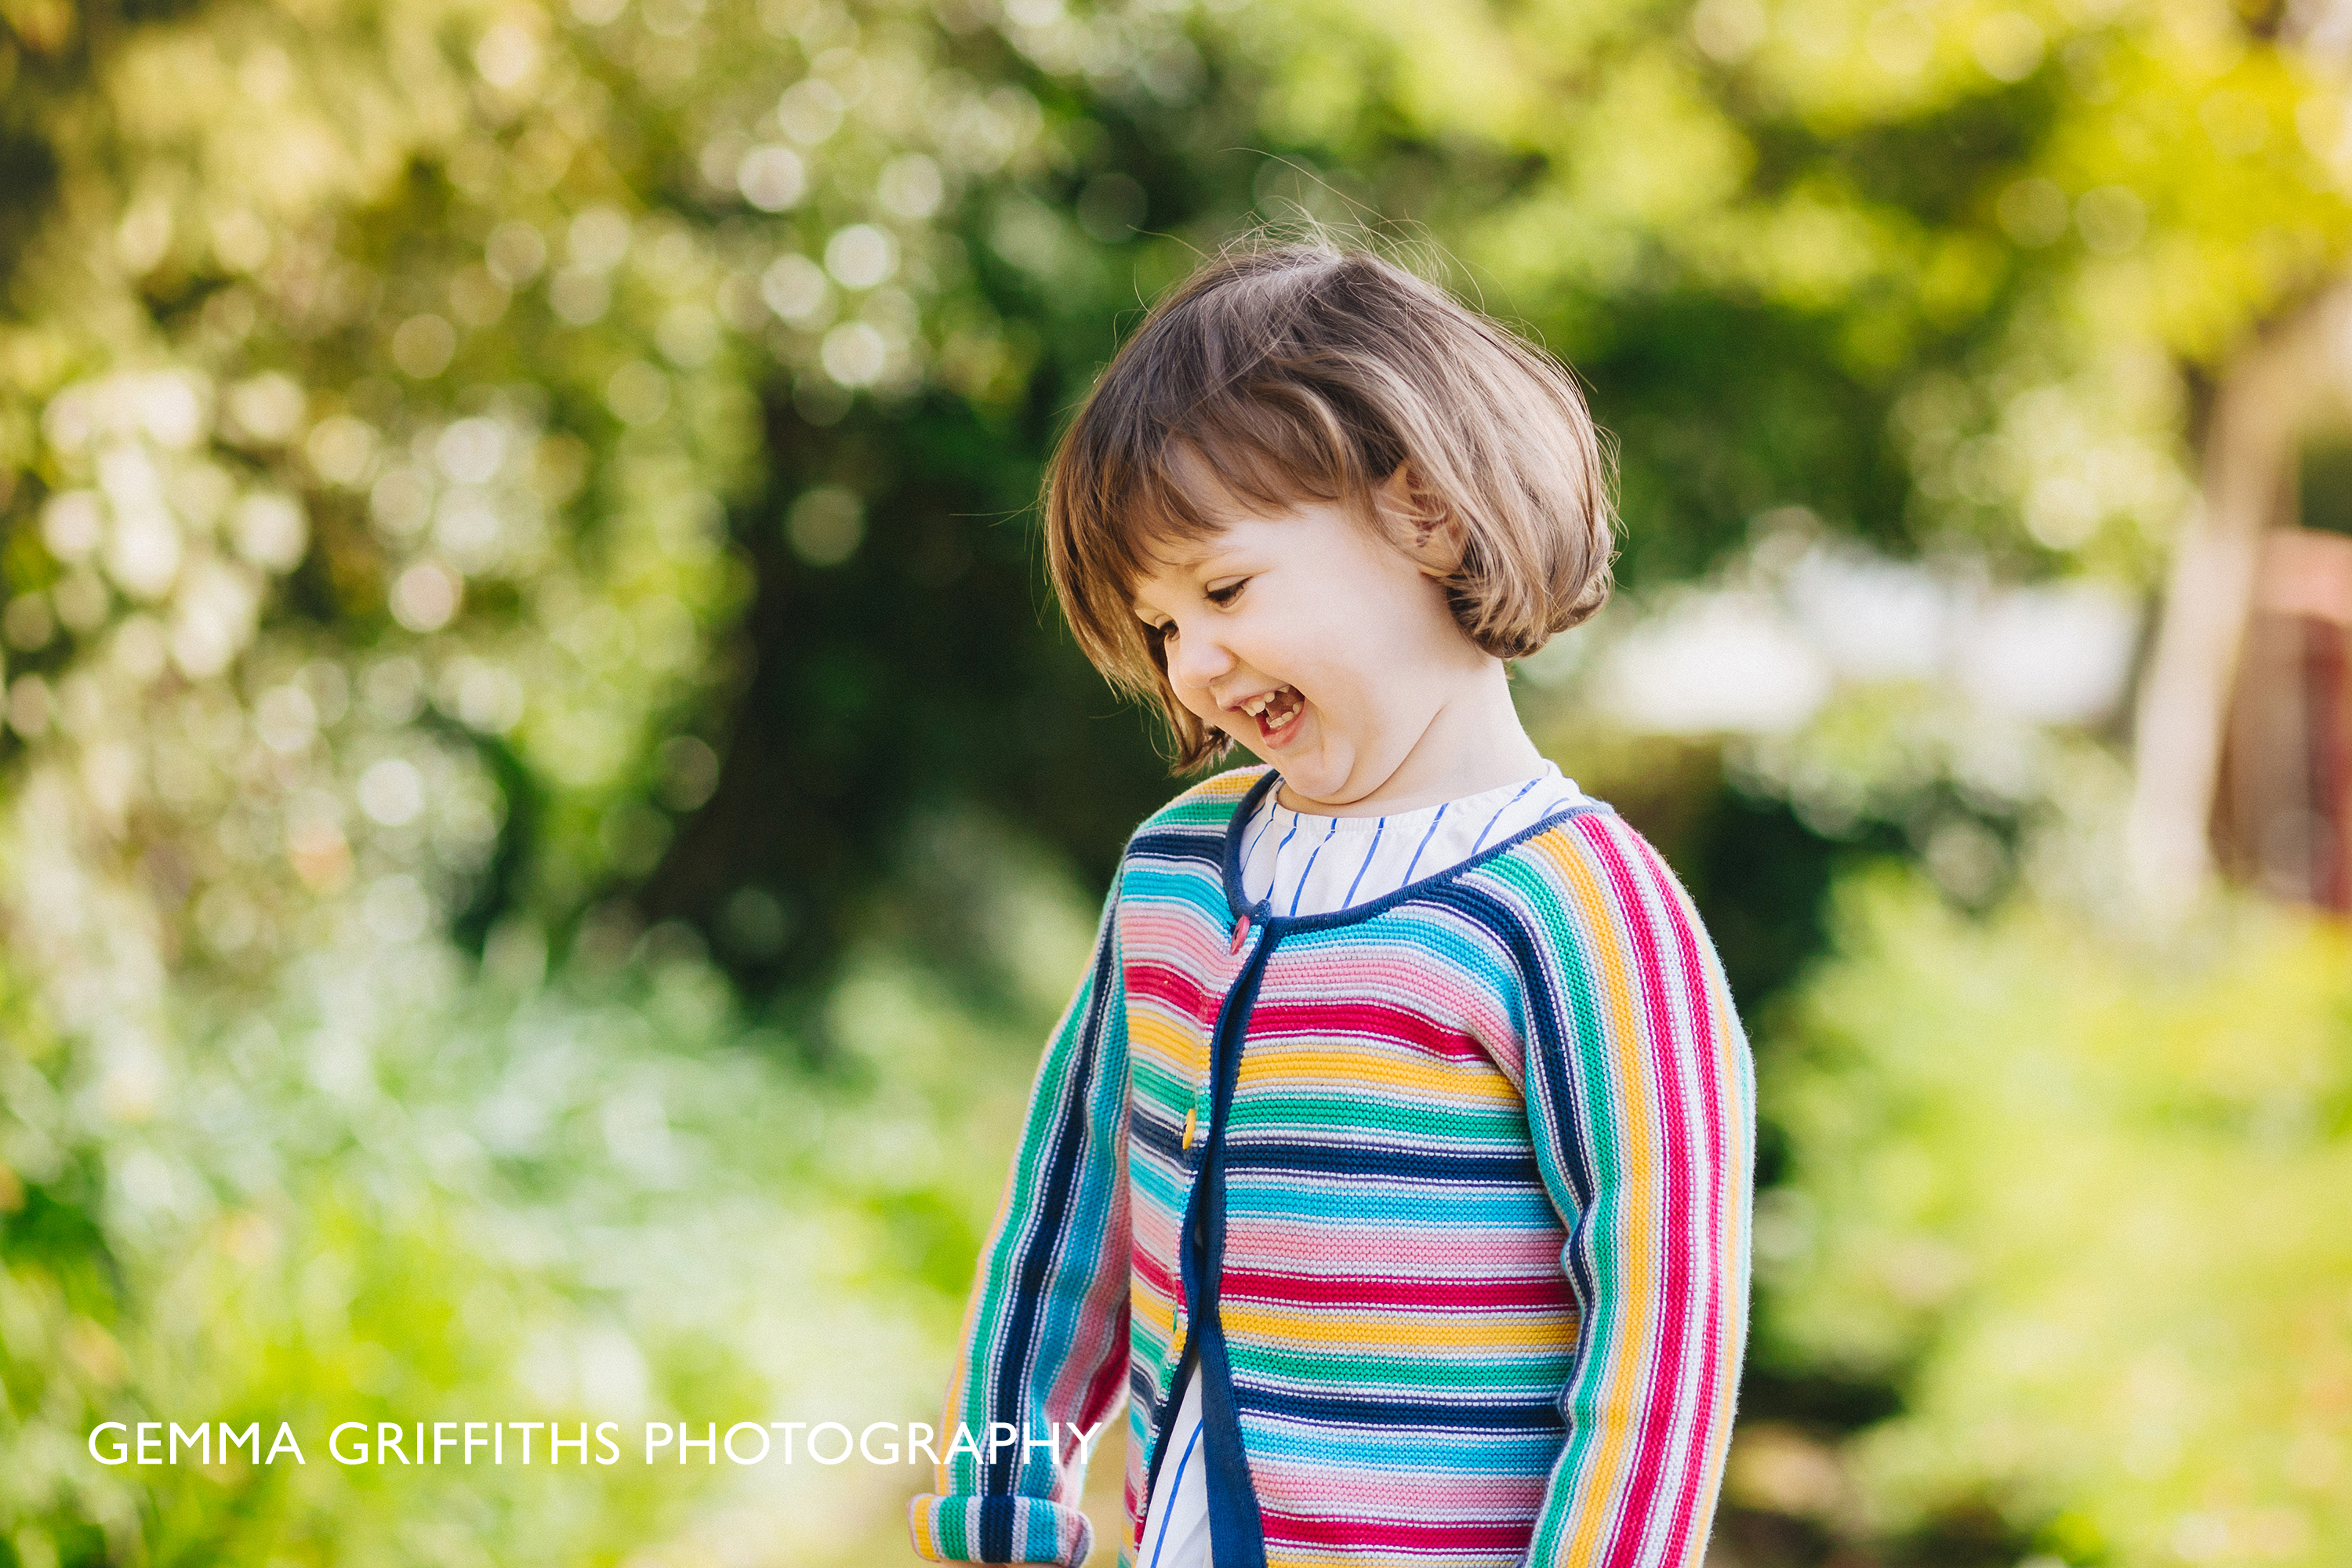 Portrait of a smiling toddler